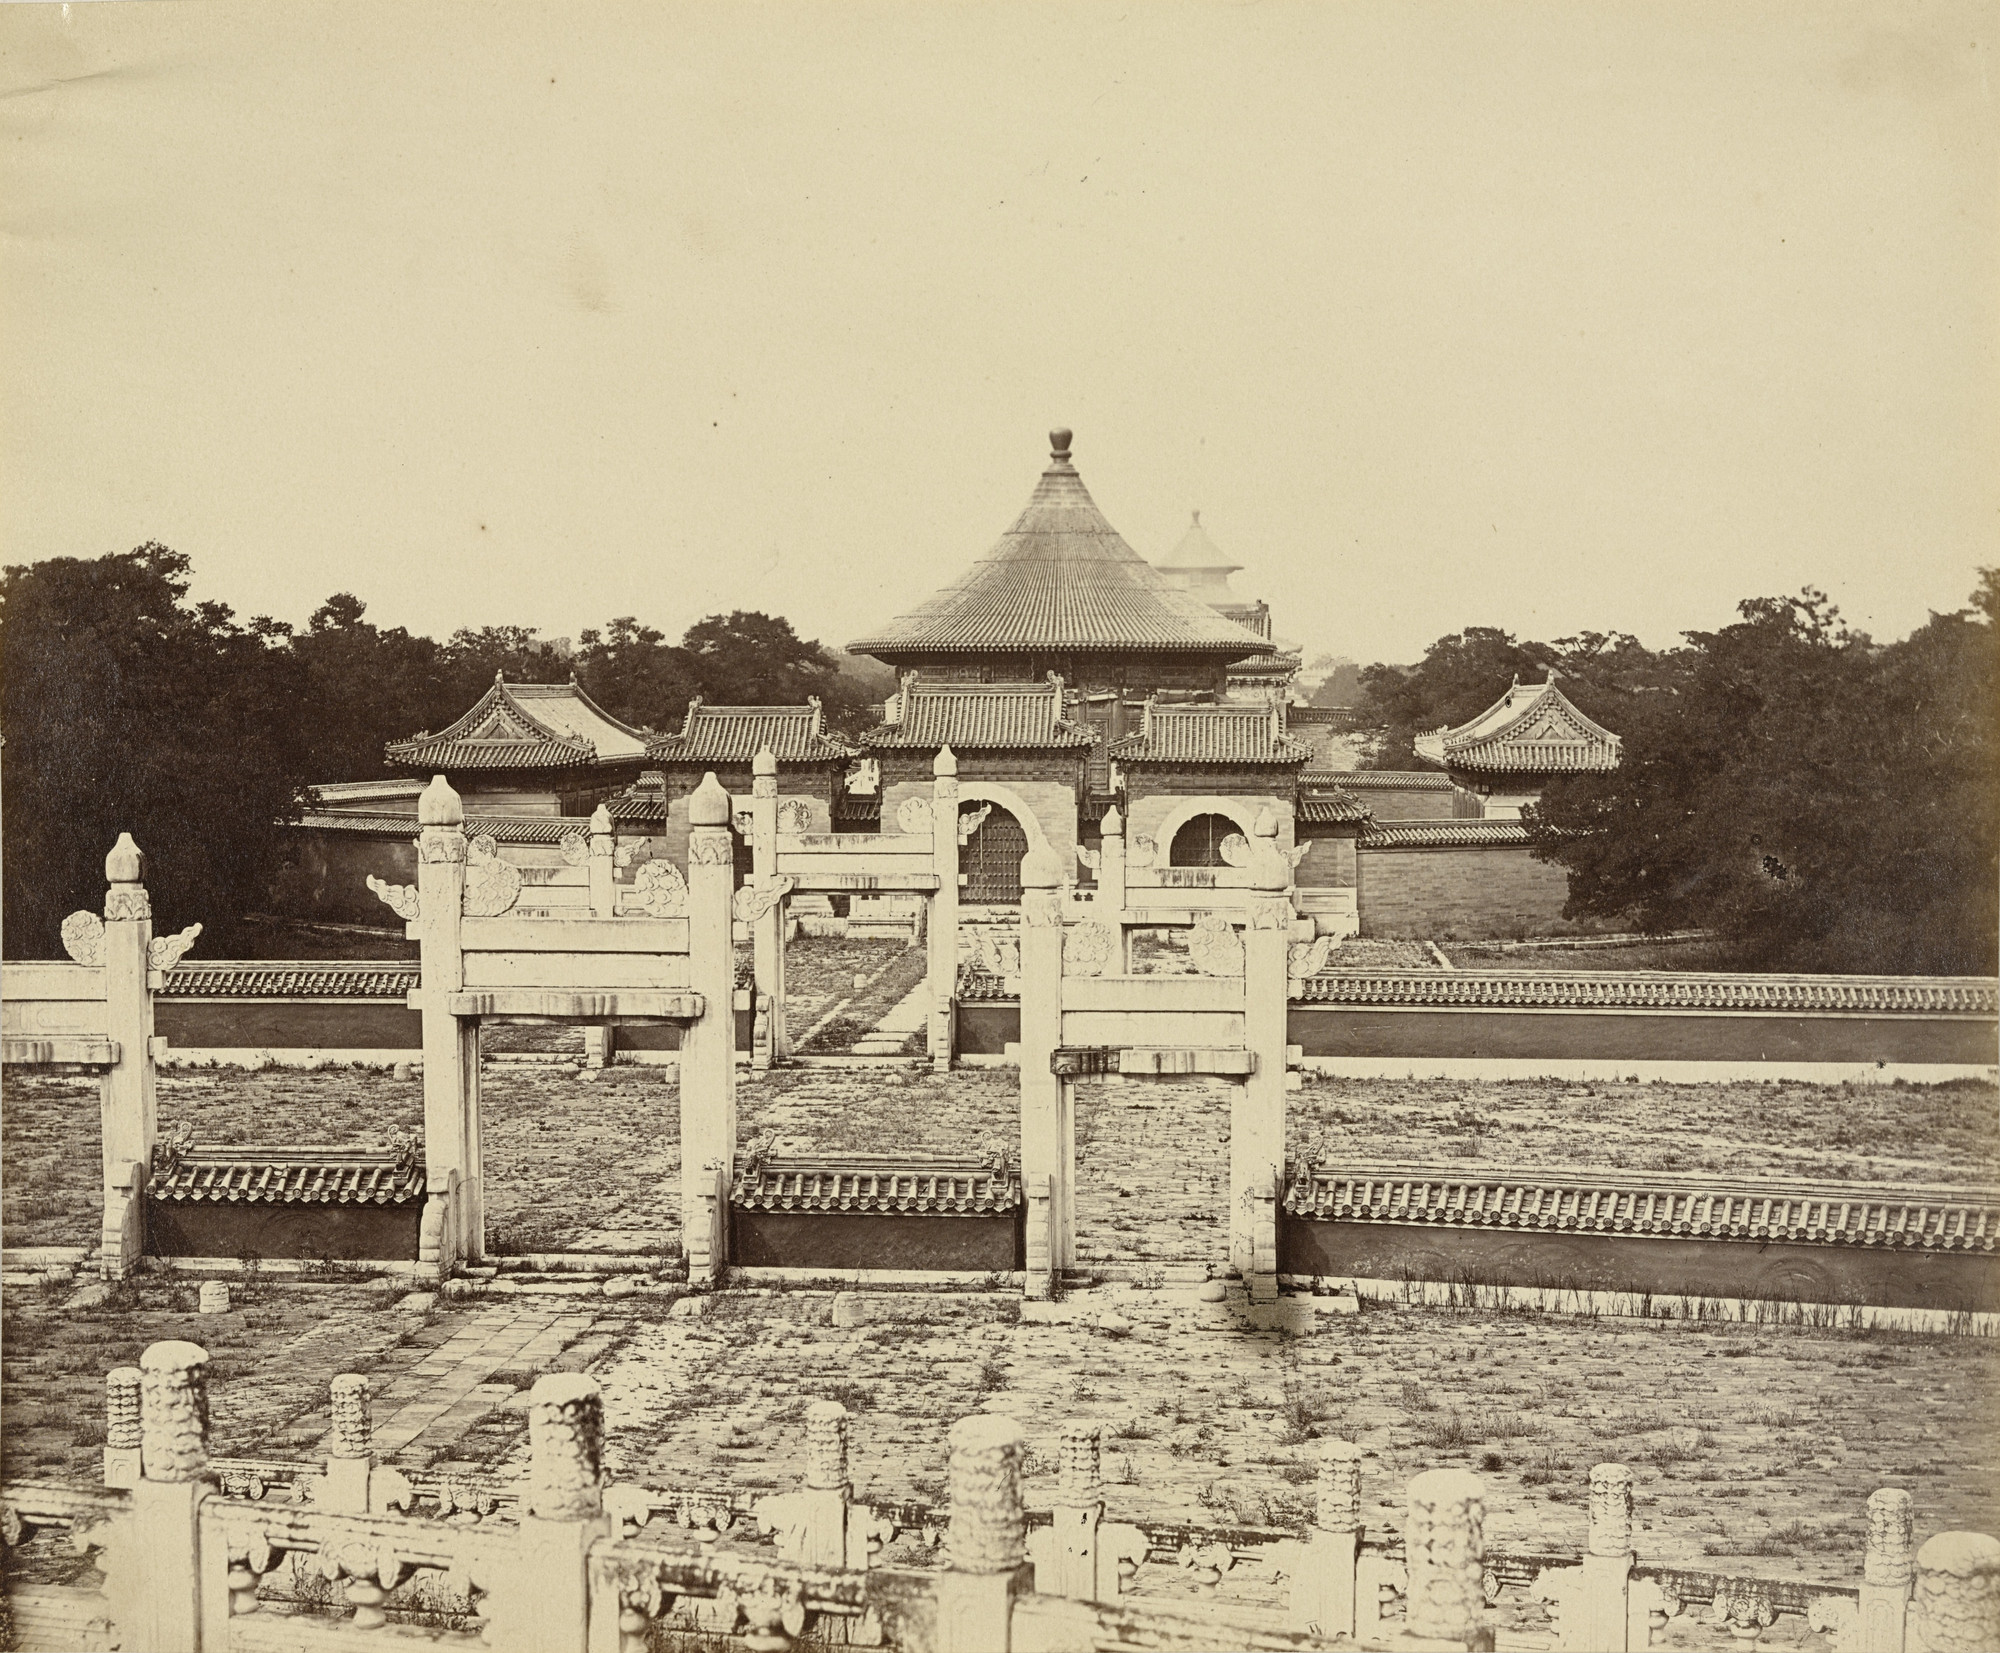 Felice Beato. Interior and Arches of the Temple of Heaven, Where the Emperor Sacrifices Once a Year in the Chinese City of Peking. October 1860